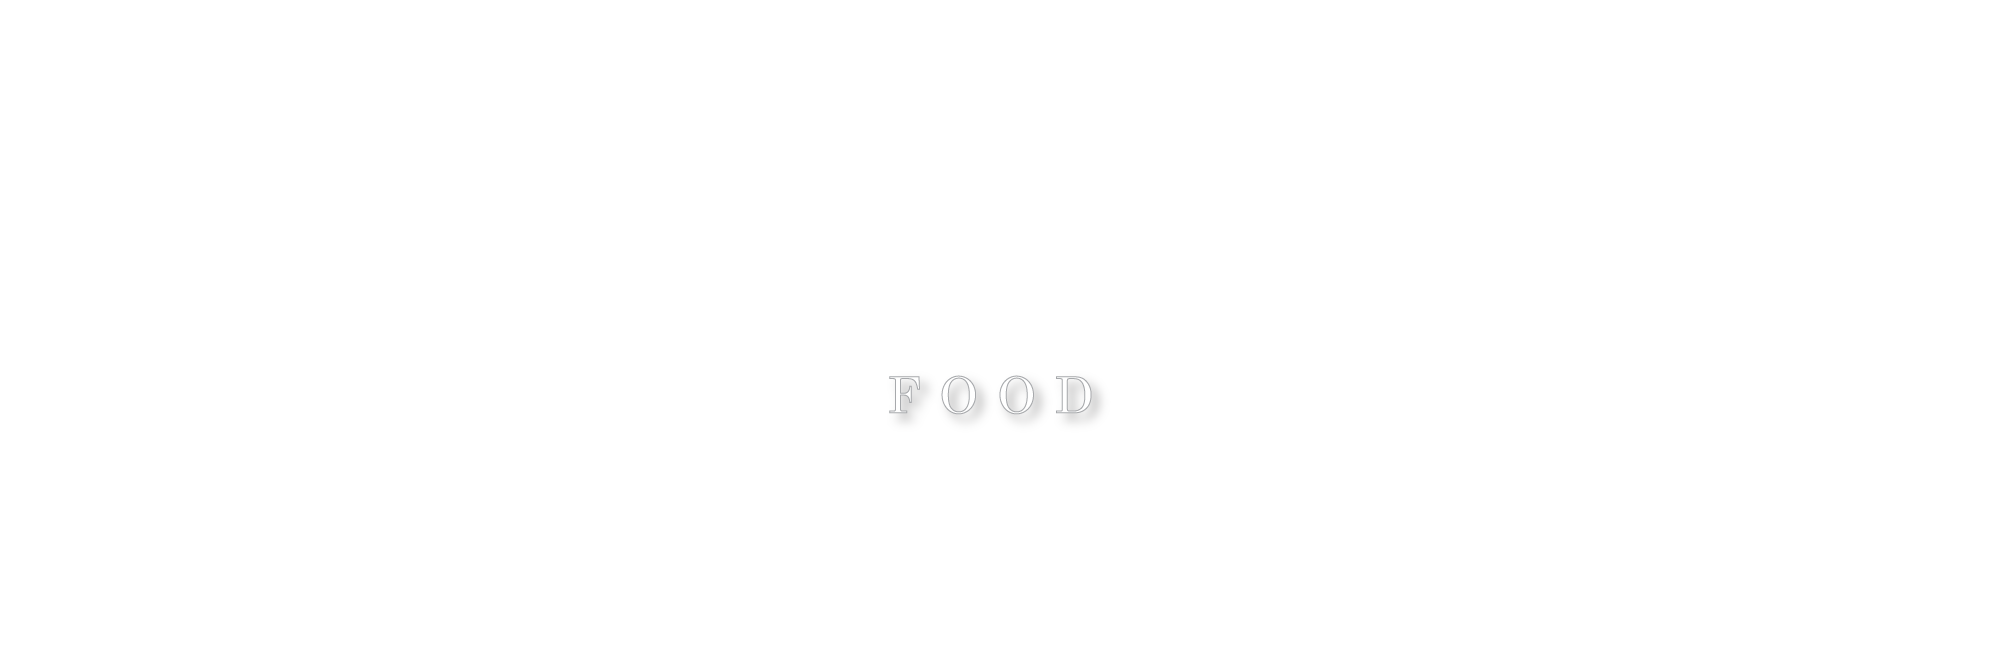 Time's One FOOD